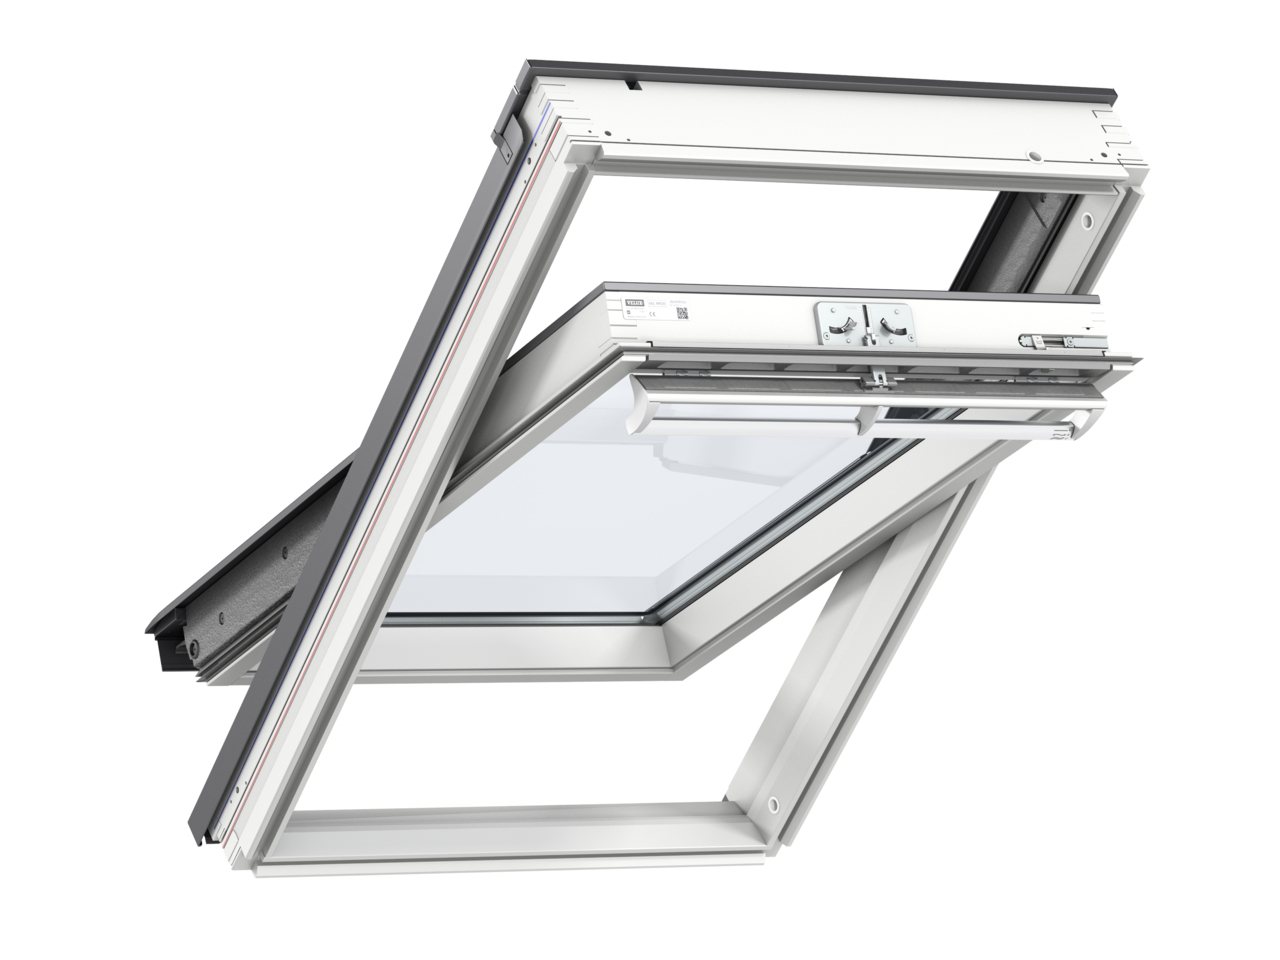 Velux GGL MK06 780 x 1180mm Centre Pivot 66 Pane Roof Window - White Painted